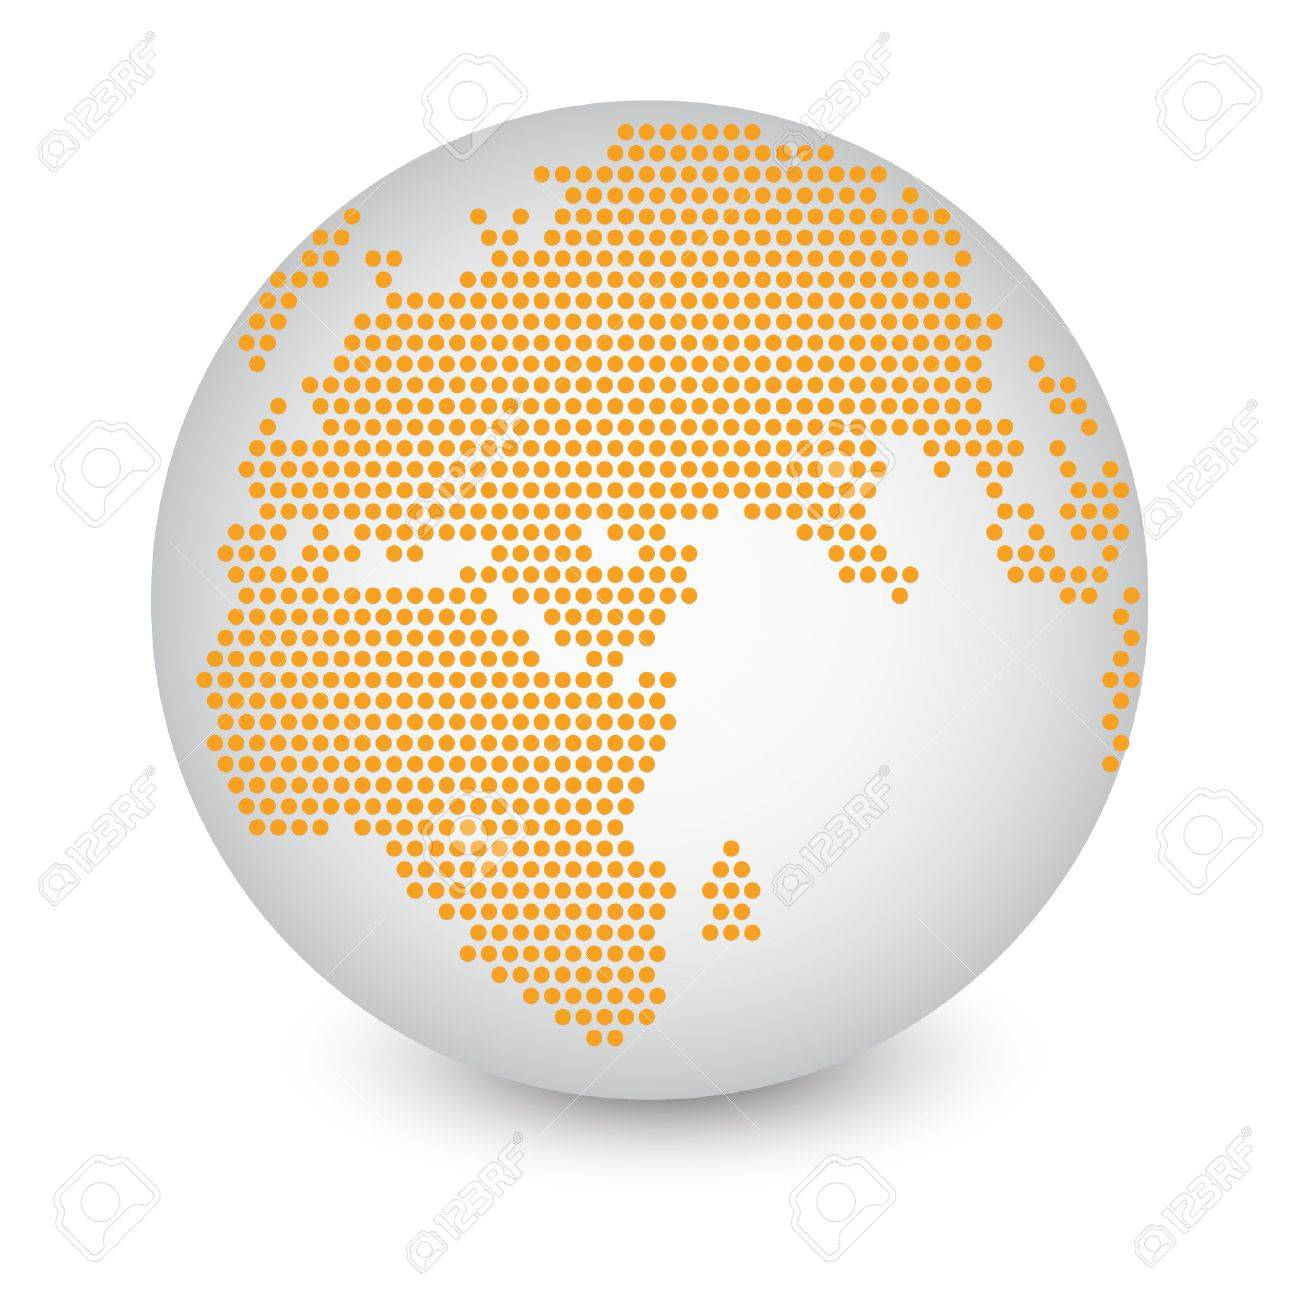 Dotted world map globe hecho de ilustracin crculo formas dotted world map globe hecho de ilustracin crculo formas vectoriales eps 10 foto de archivo gumiabroncs Gallery